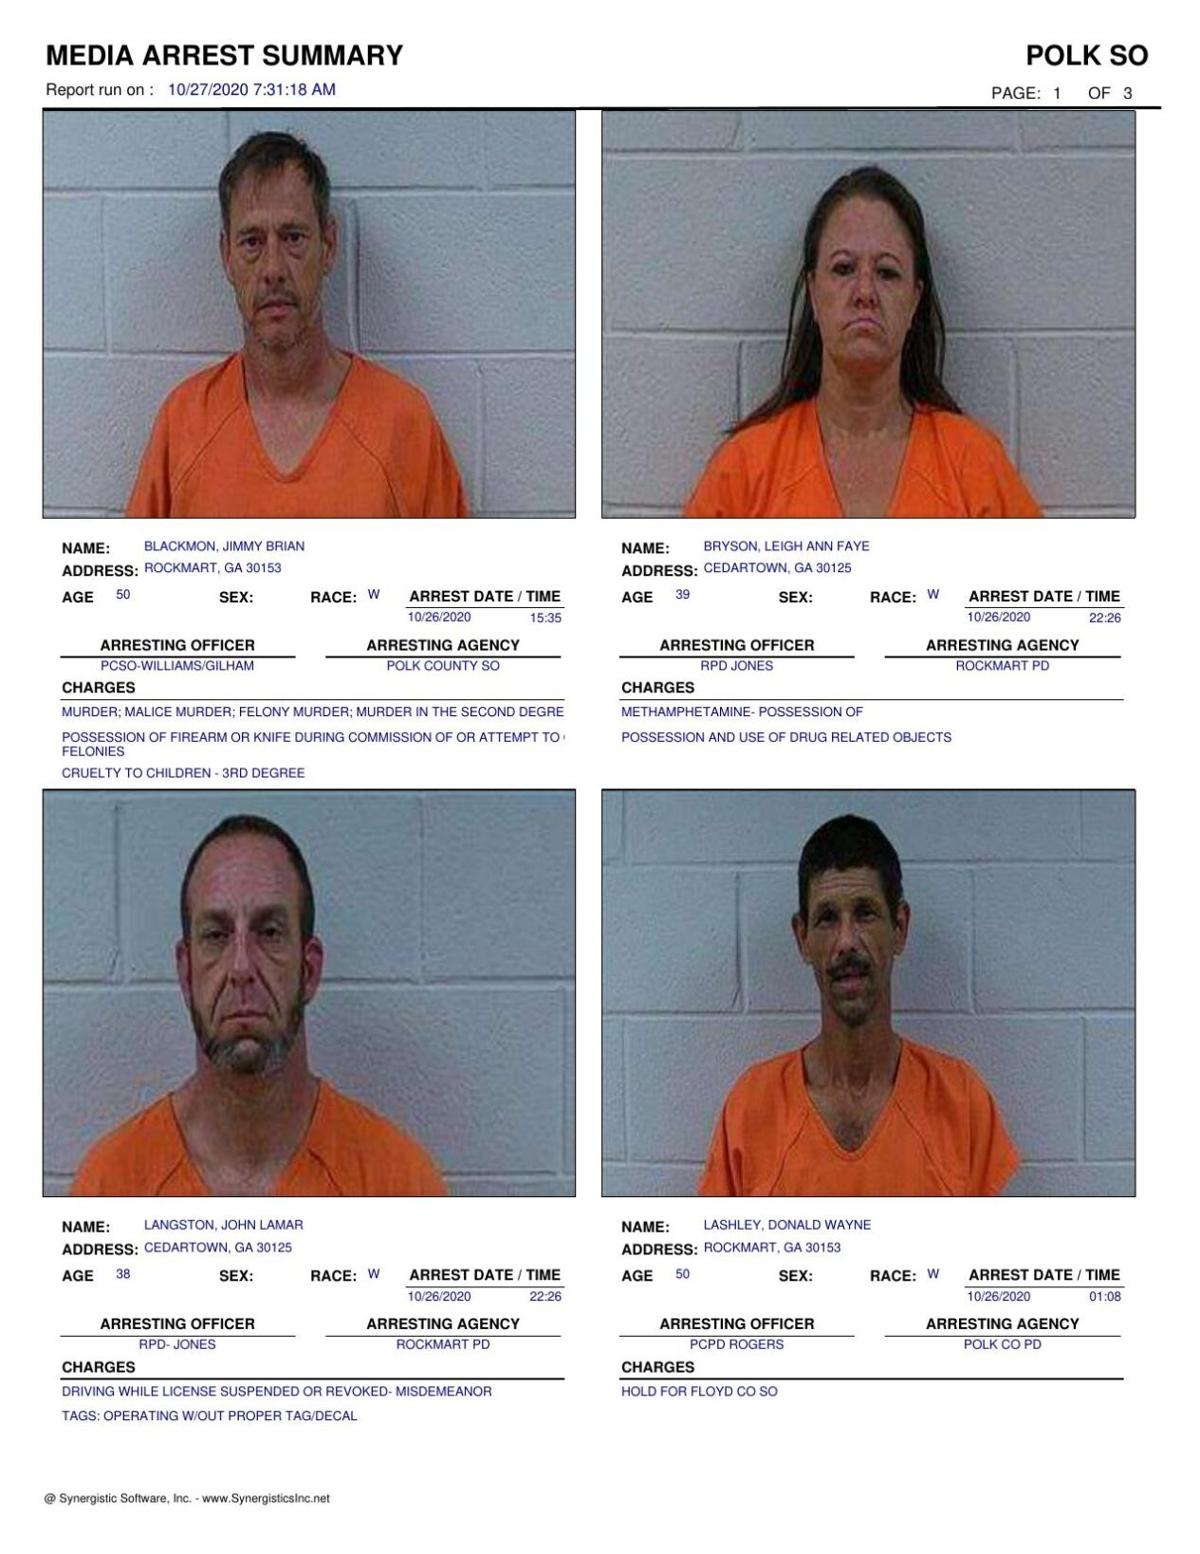 Polk County Jail Report for Tuesday, Oct. 27